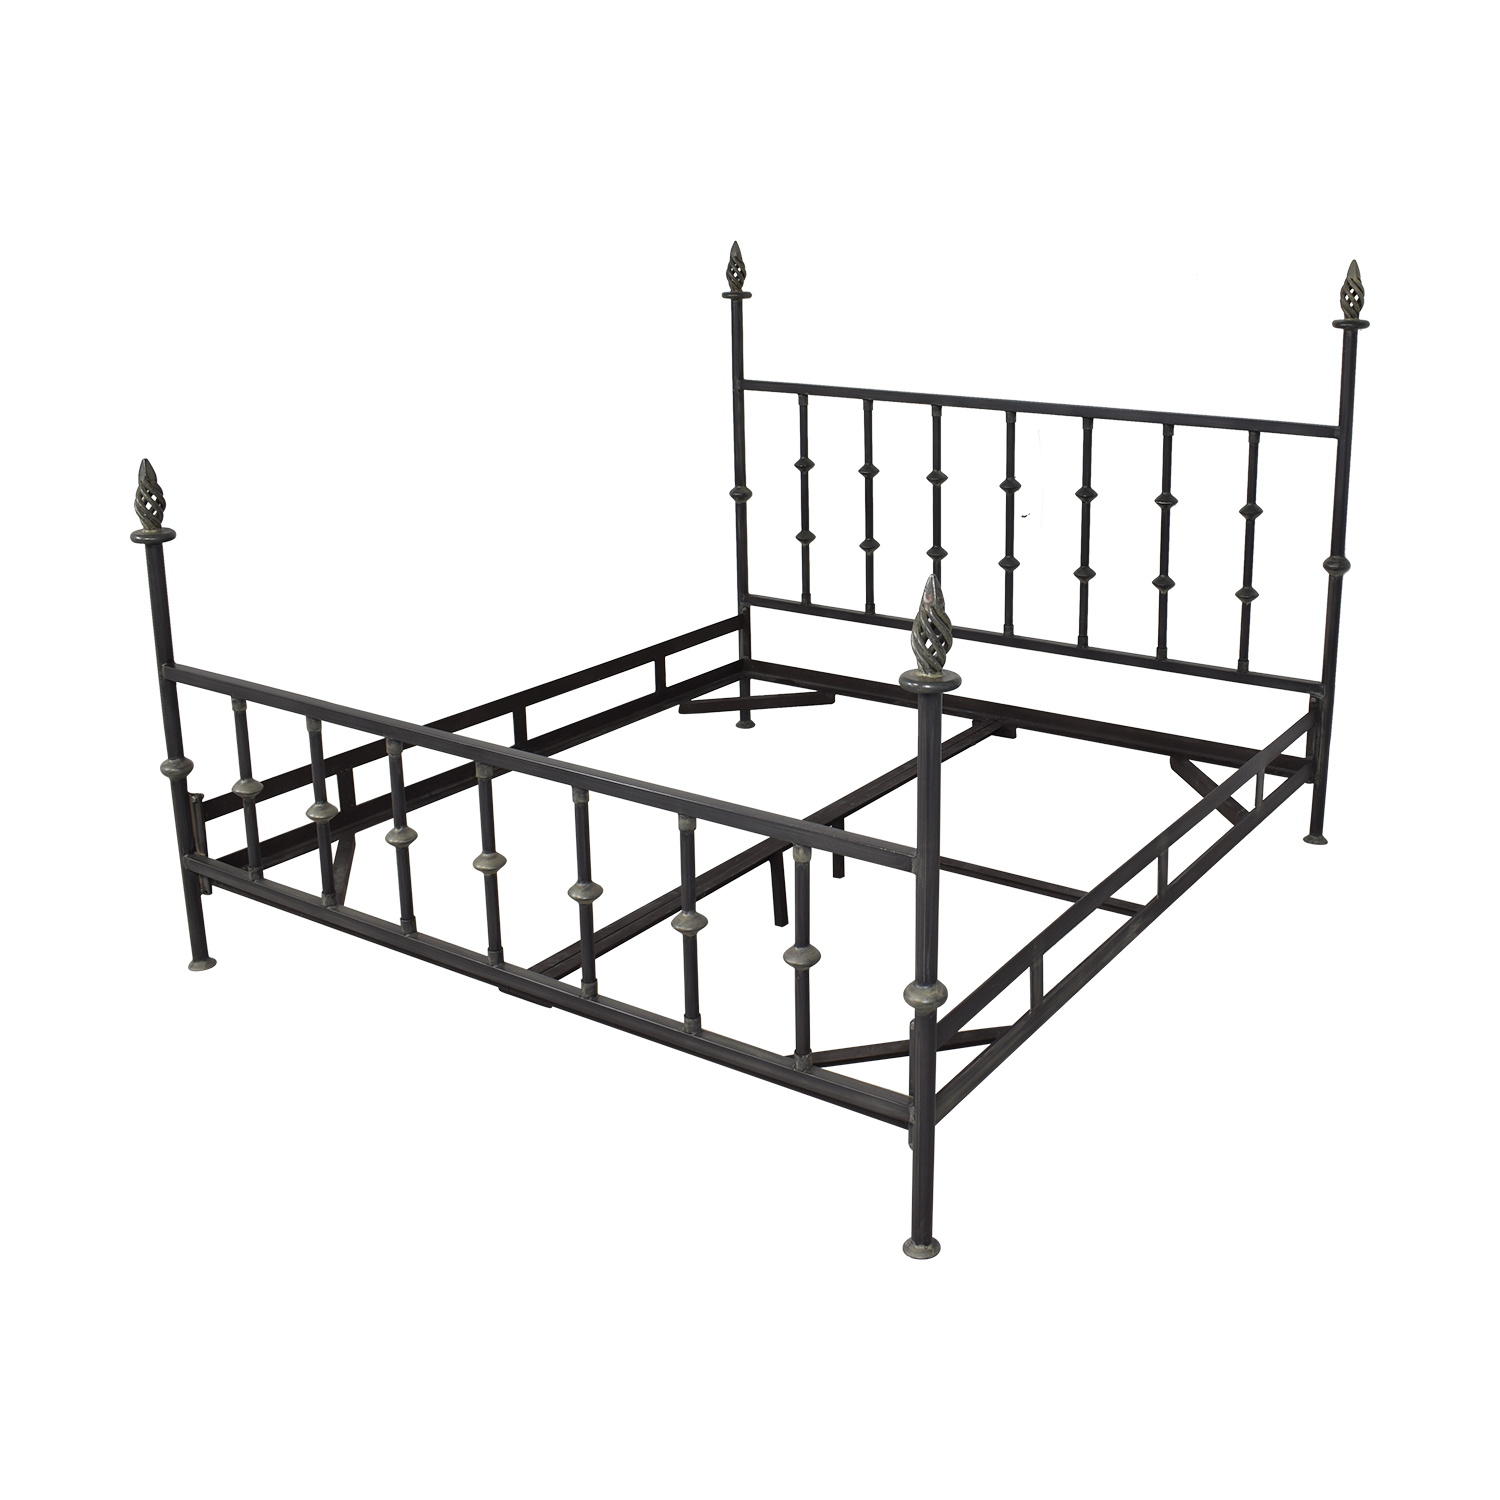 King Bed Frame with Spiral Finials